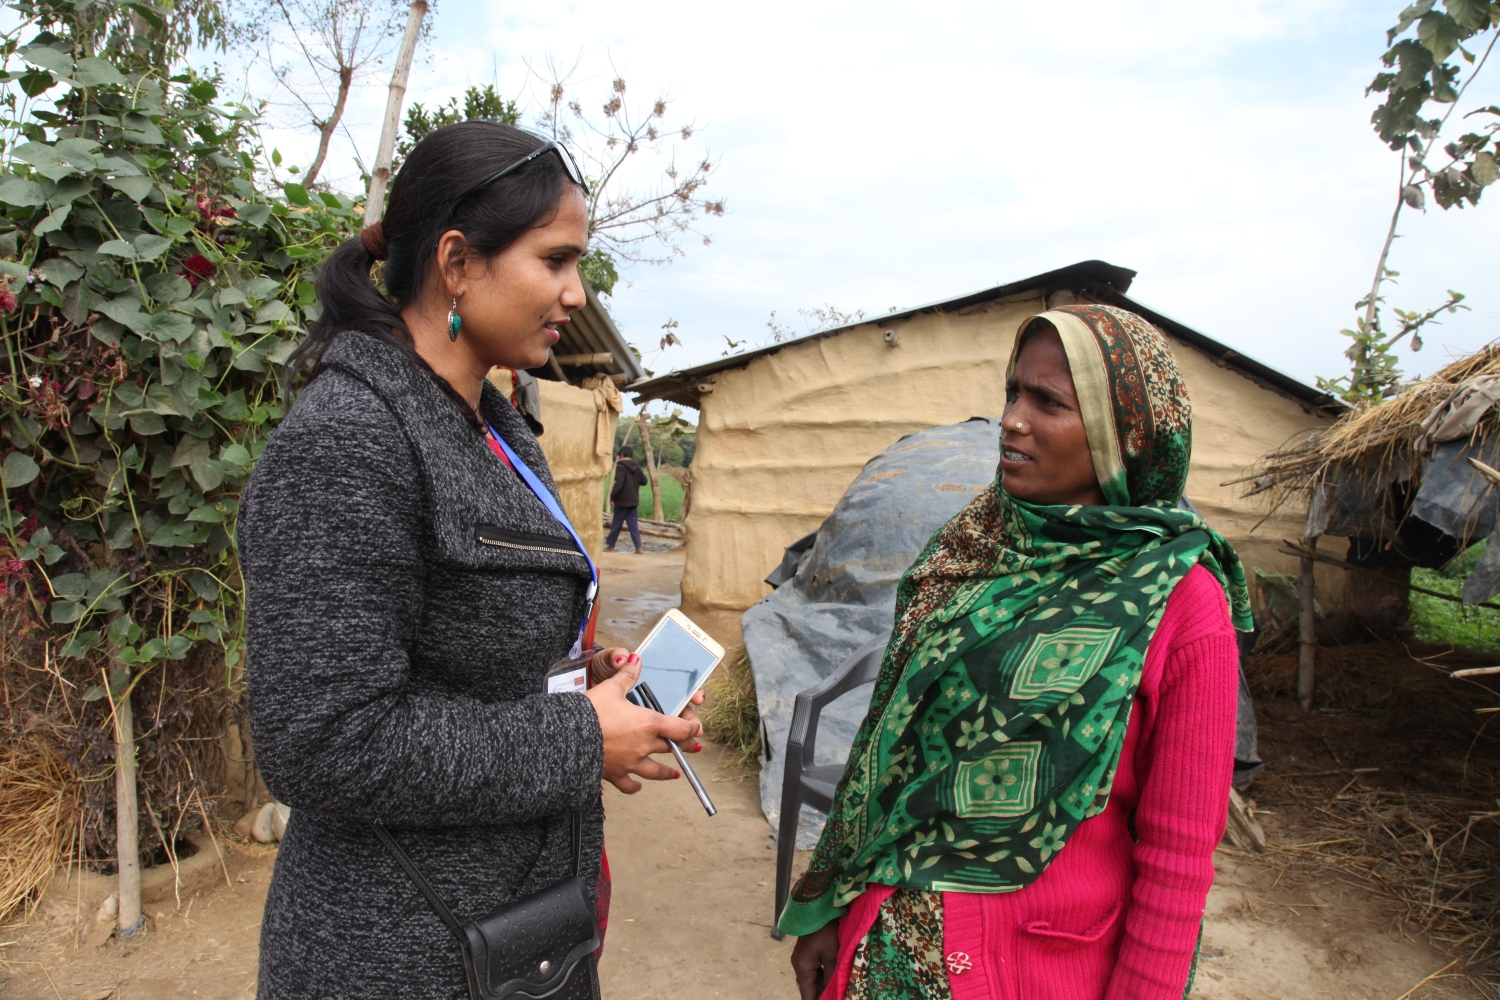 Woman interviewing another woman in Nepal